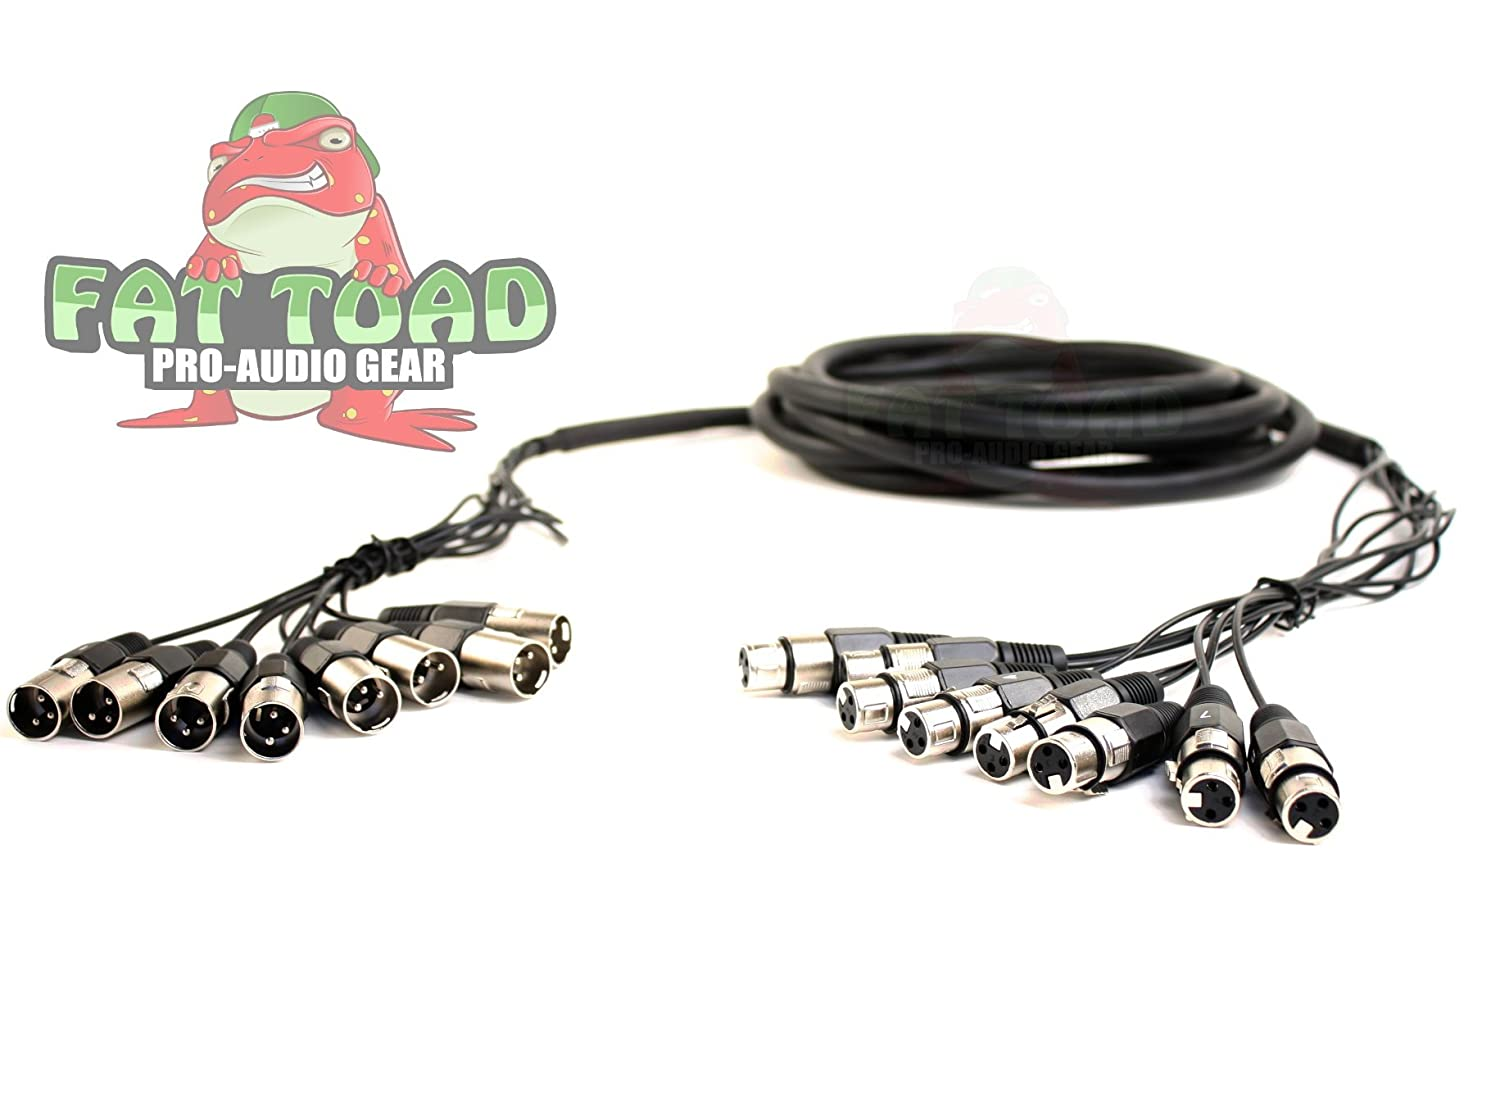 Xlr Snake Cable Patch 8 Channels By Fat Toad Studio Wiring Colors Also Connector Diagram Besides Stage Live Sound Recording Multicore Cords Pro Audio Shielded Balanced Double Sided